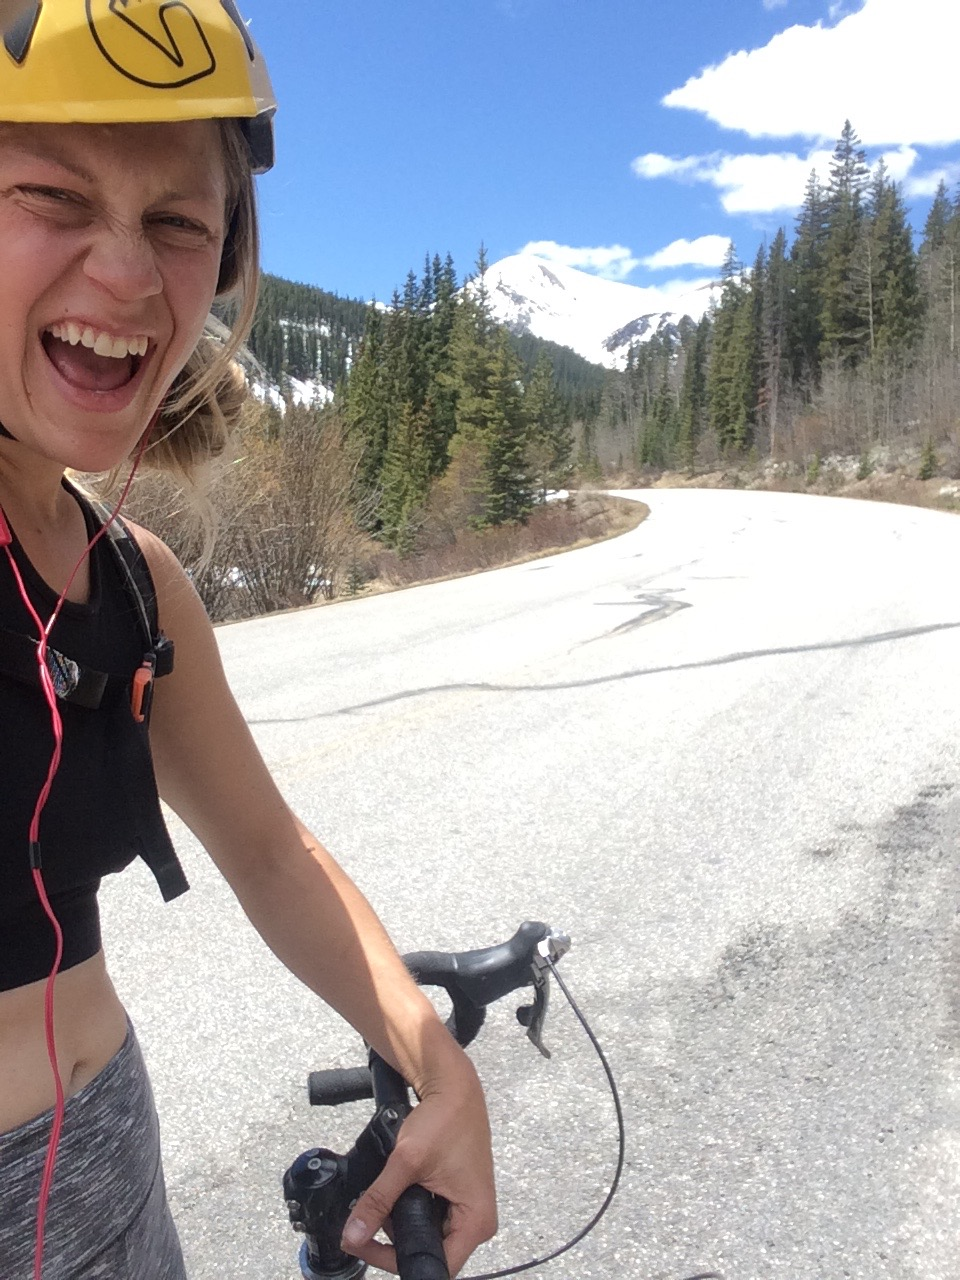 So there is a lot of this. Running, biking, lifting and climbing until jewell and I leave for Pakistan. Putting my head down and staying focused on making money. Gotta collect those freedom dollars for the next adventure. Here i am riding cottonwood pass outside of leadville colorado.